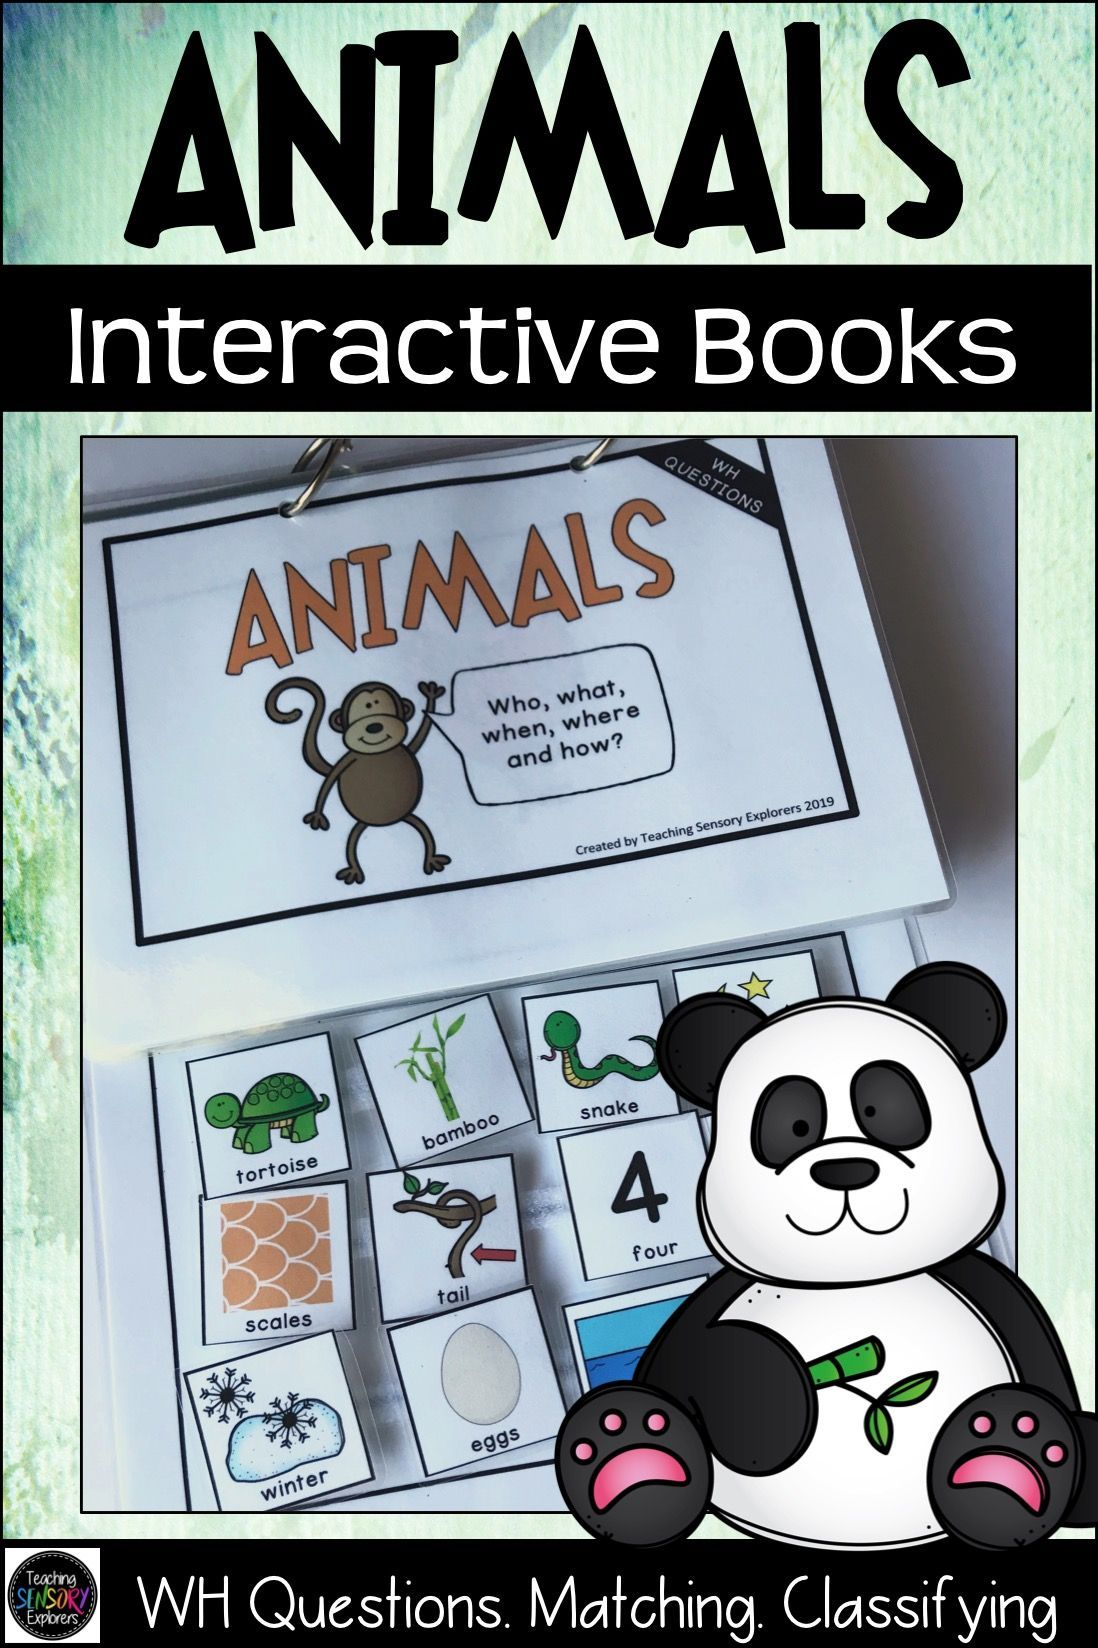 Animals Interactive Books Matching Classifying Wh